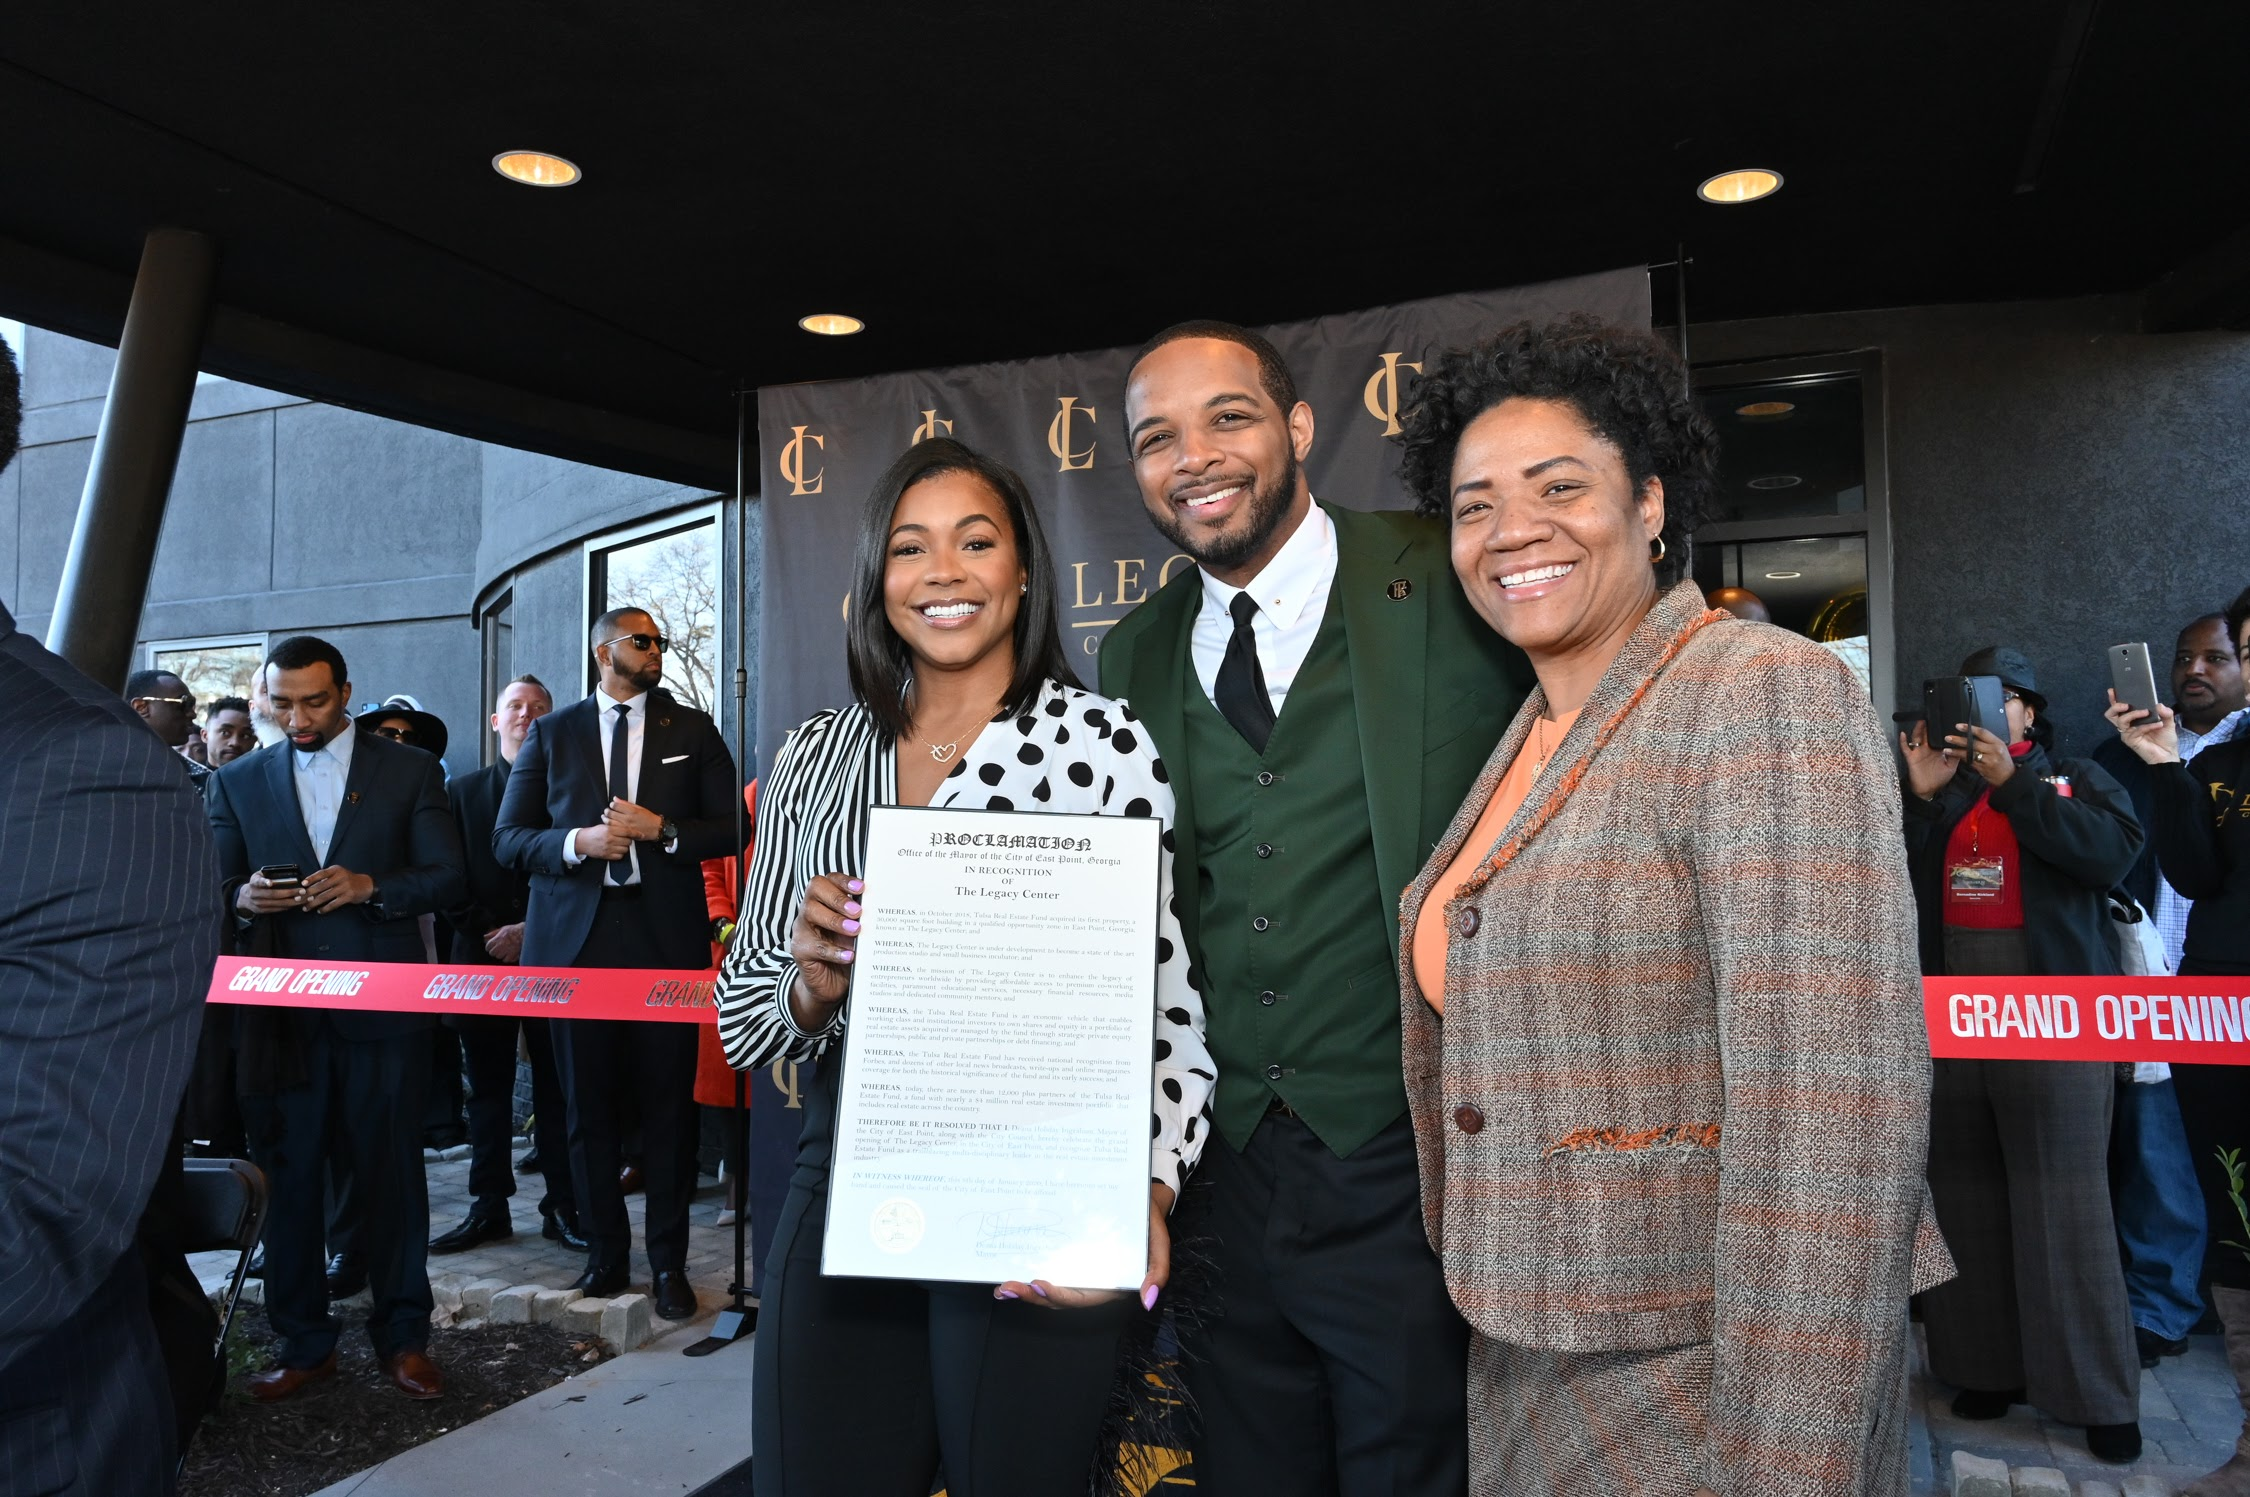 Founders Jay and Ernestine Morrison and the Tulsa Real Estate Fund Hosts Historic 5-Day Grand Opening of The Legacy Center, an Economic Empowerment Hub with Mayor of East Point, 1,000+ Community Supporters, Celebrity Friends, Investment Partners and More